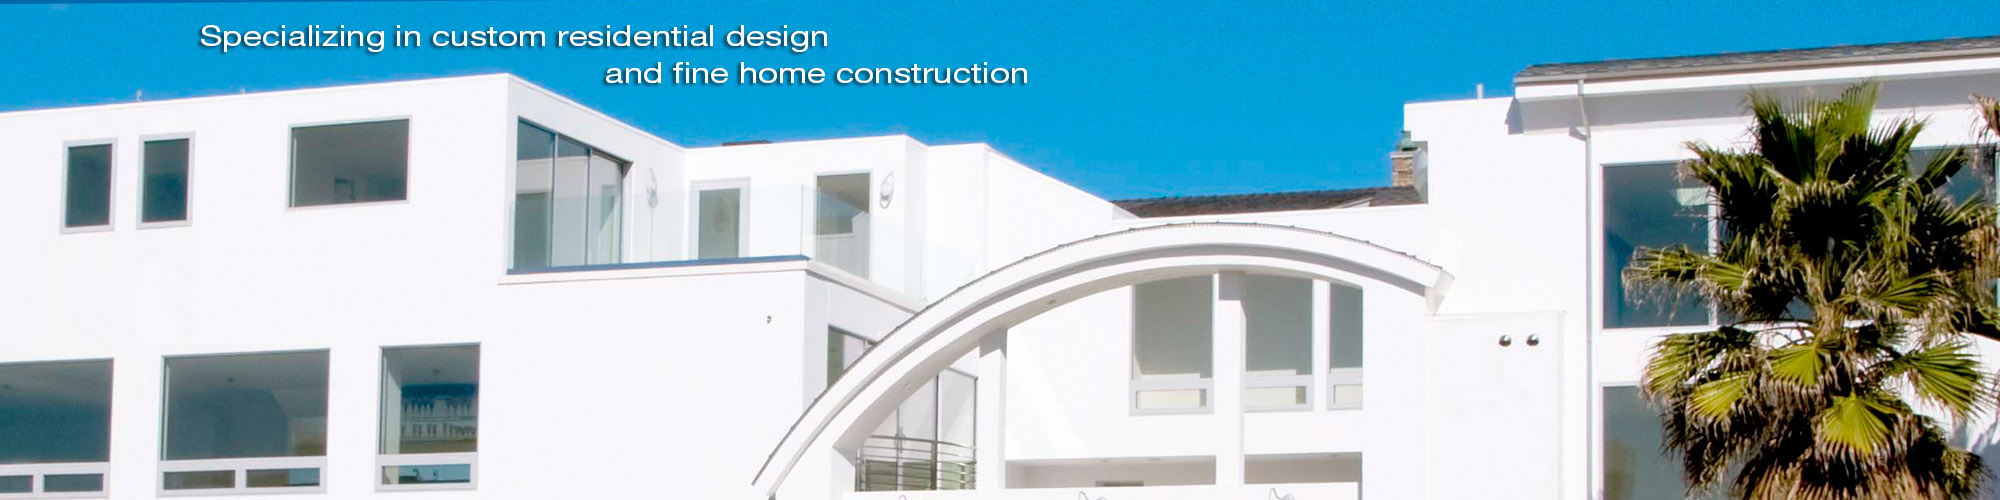 Integral Design & Construction in Ventura, California - Custom ...